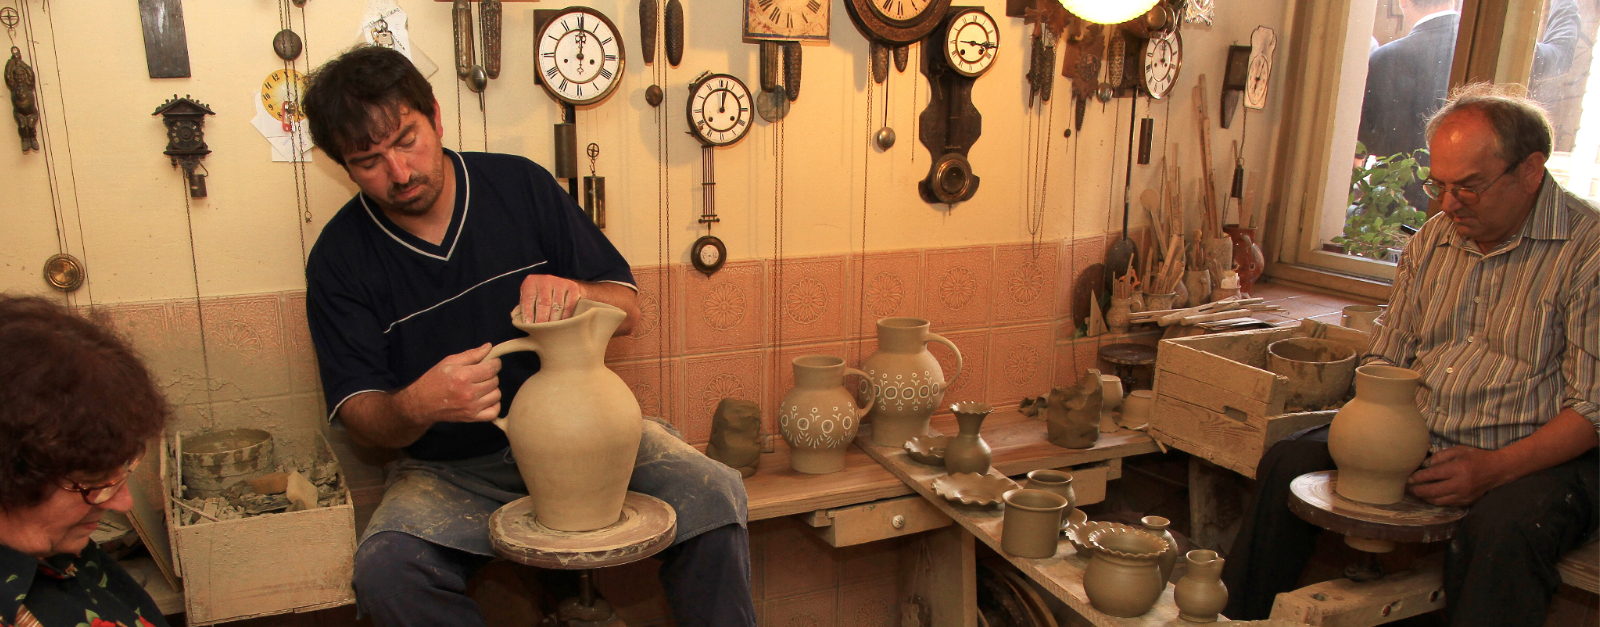 Koloveč – Museum of Technology and Crafts and traditional folk ceramics